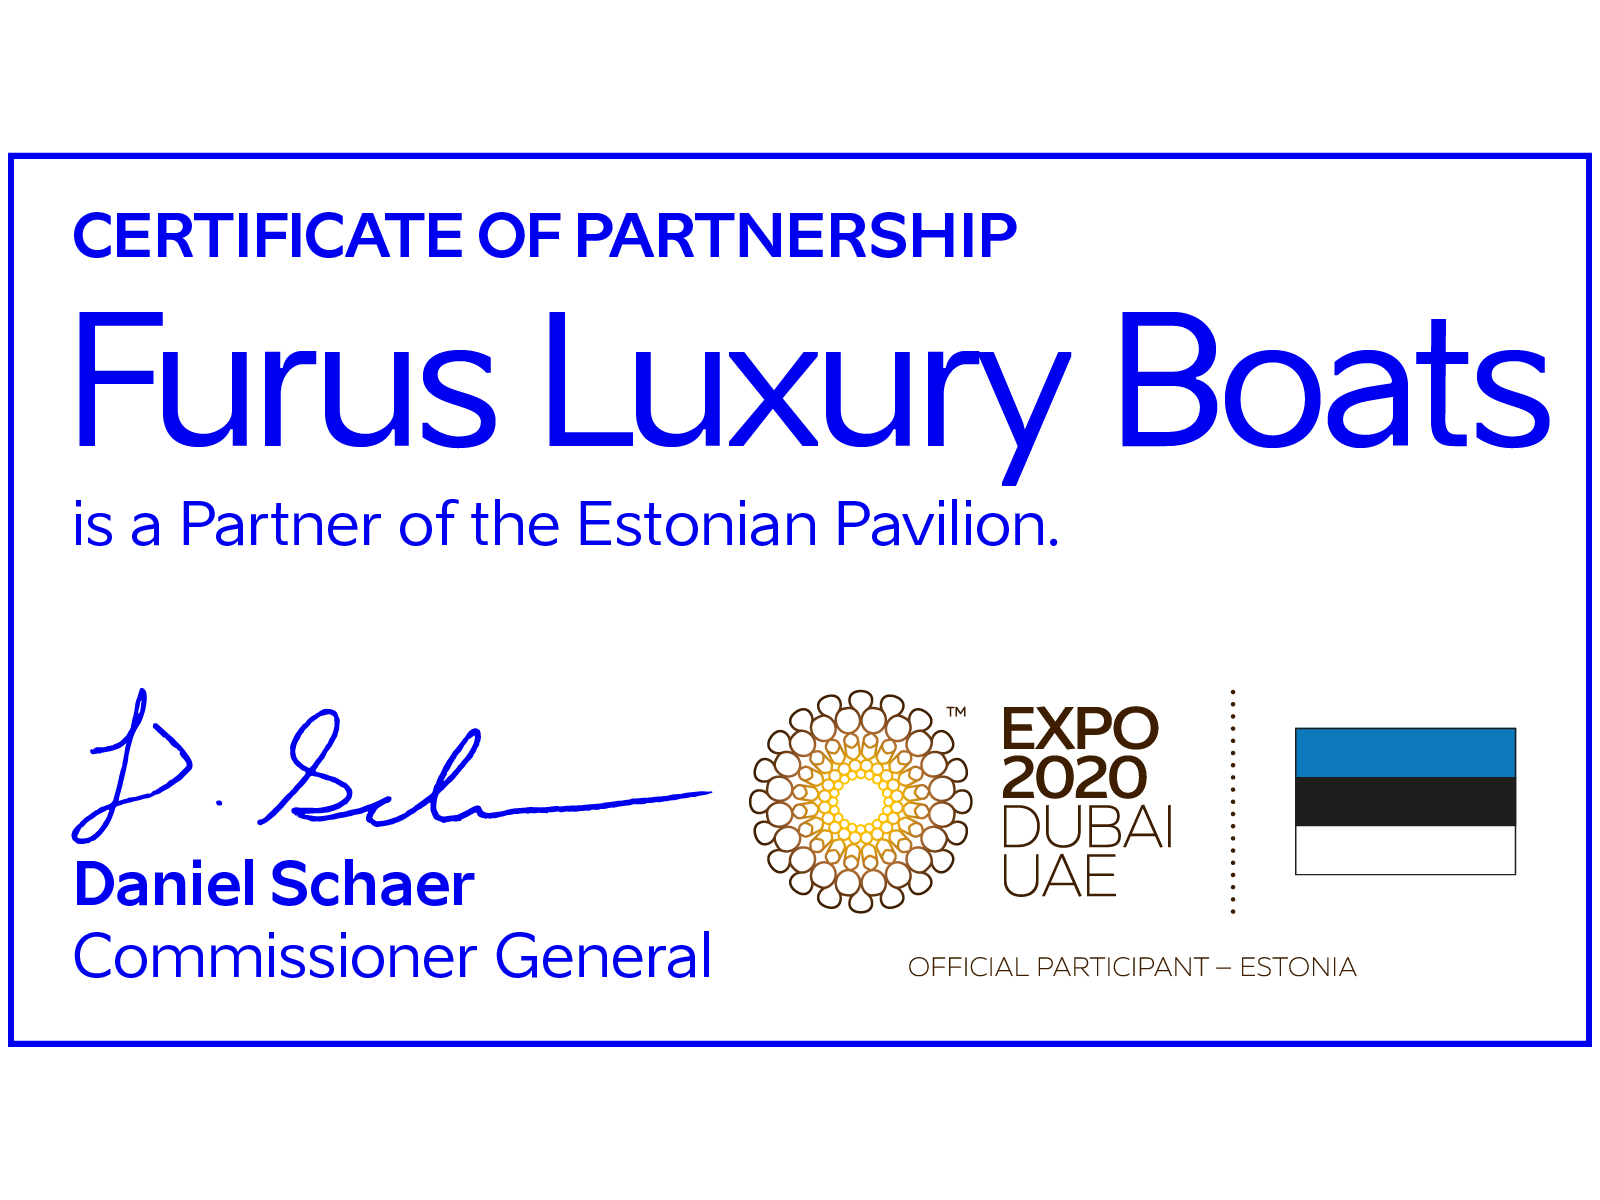 Furus Luxury Boat Expo certification